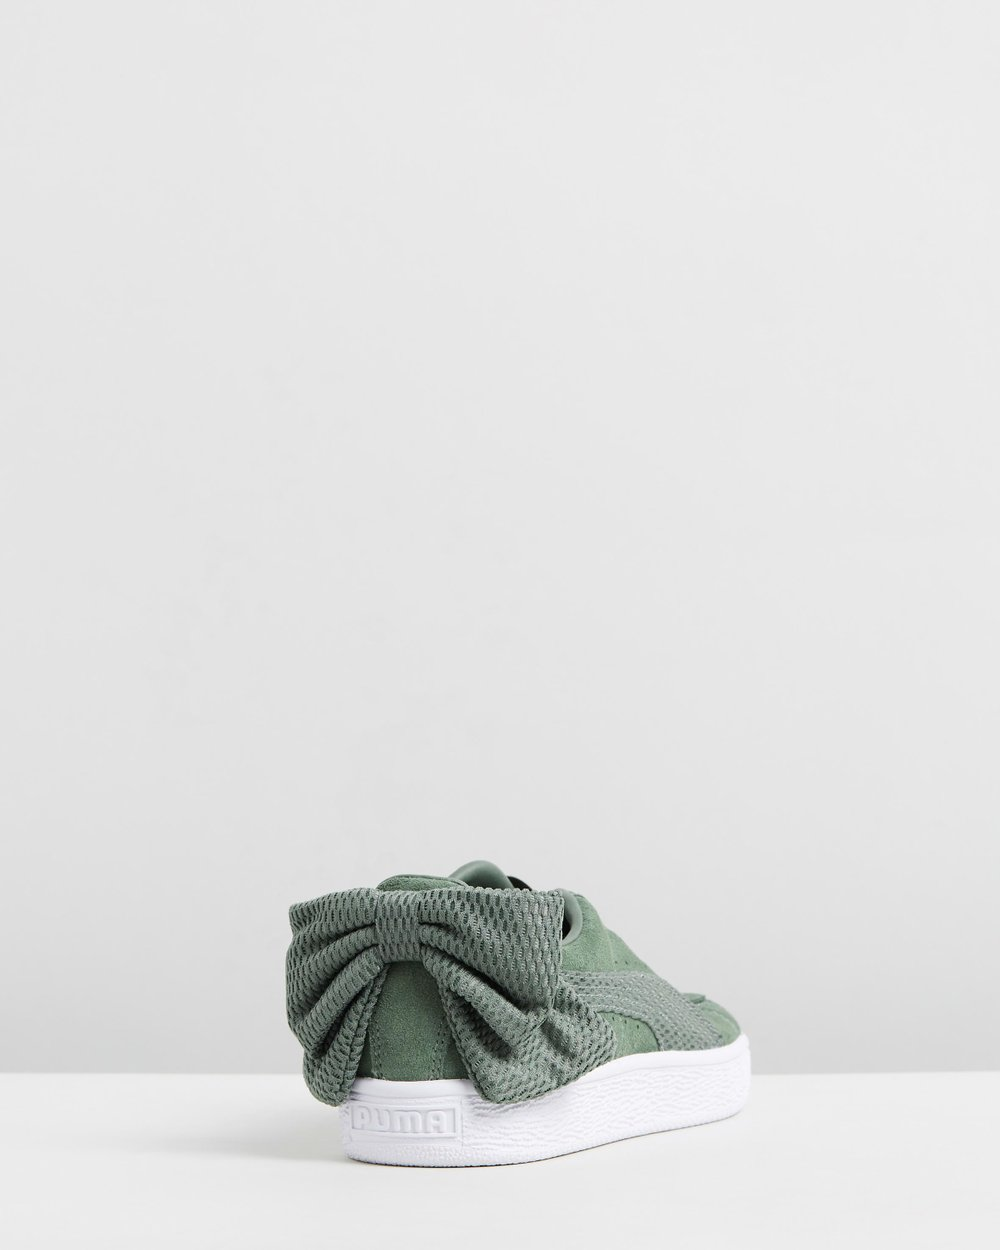 Suede Bow Uprising Sneakers - Women s by Puma Online  ea266c586